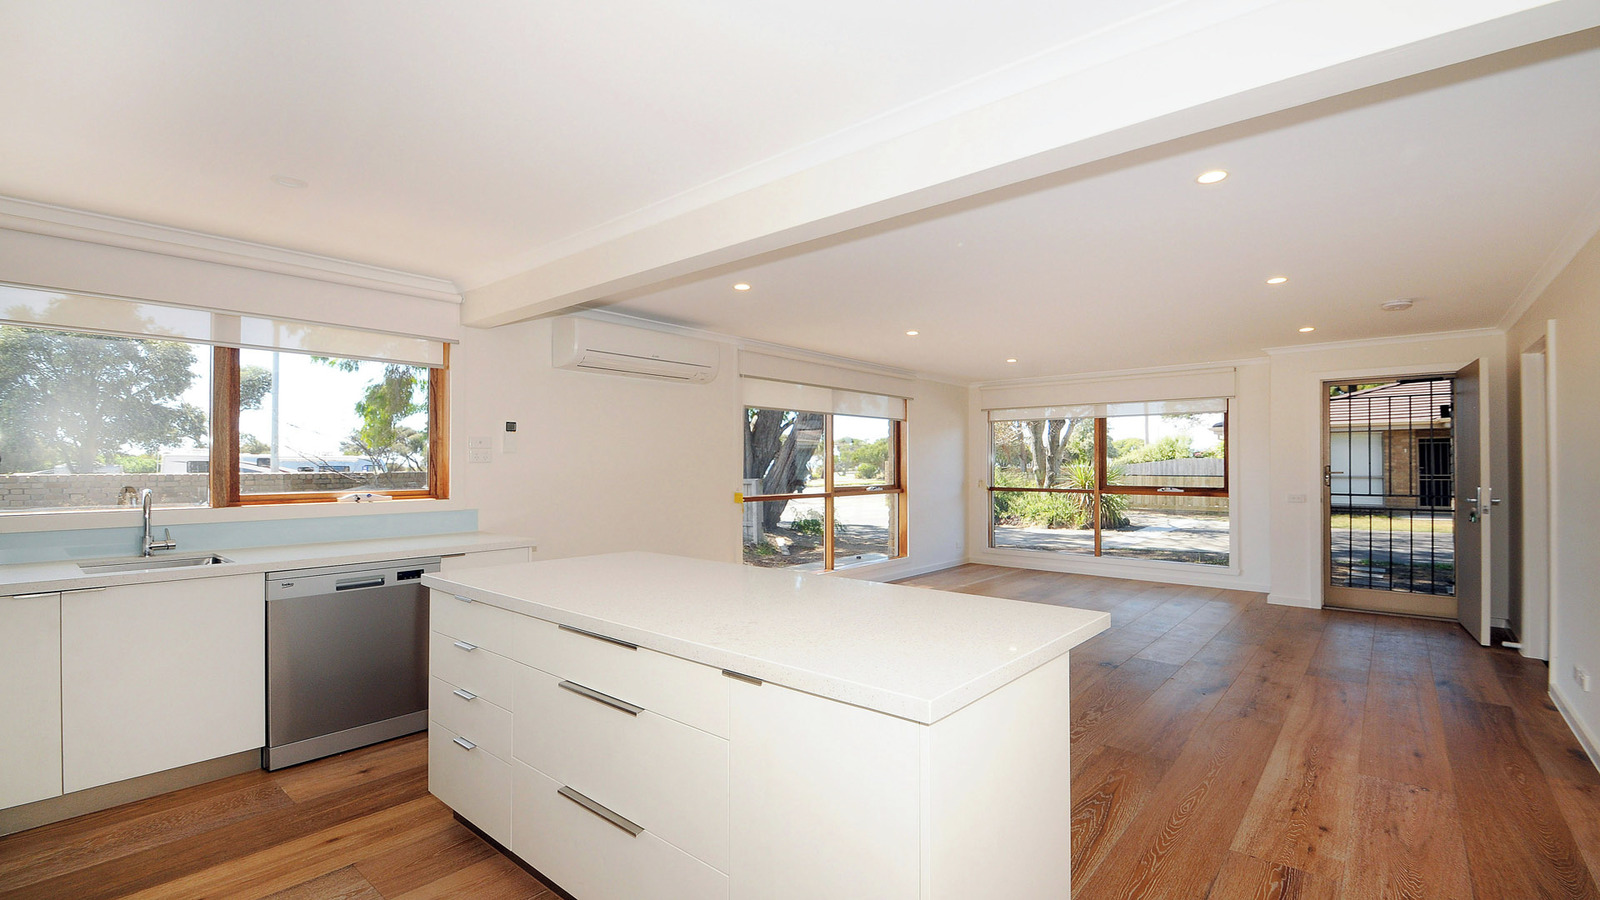 10/2475 Point Nepean Road, Rye 3941 - Image 3